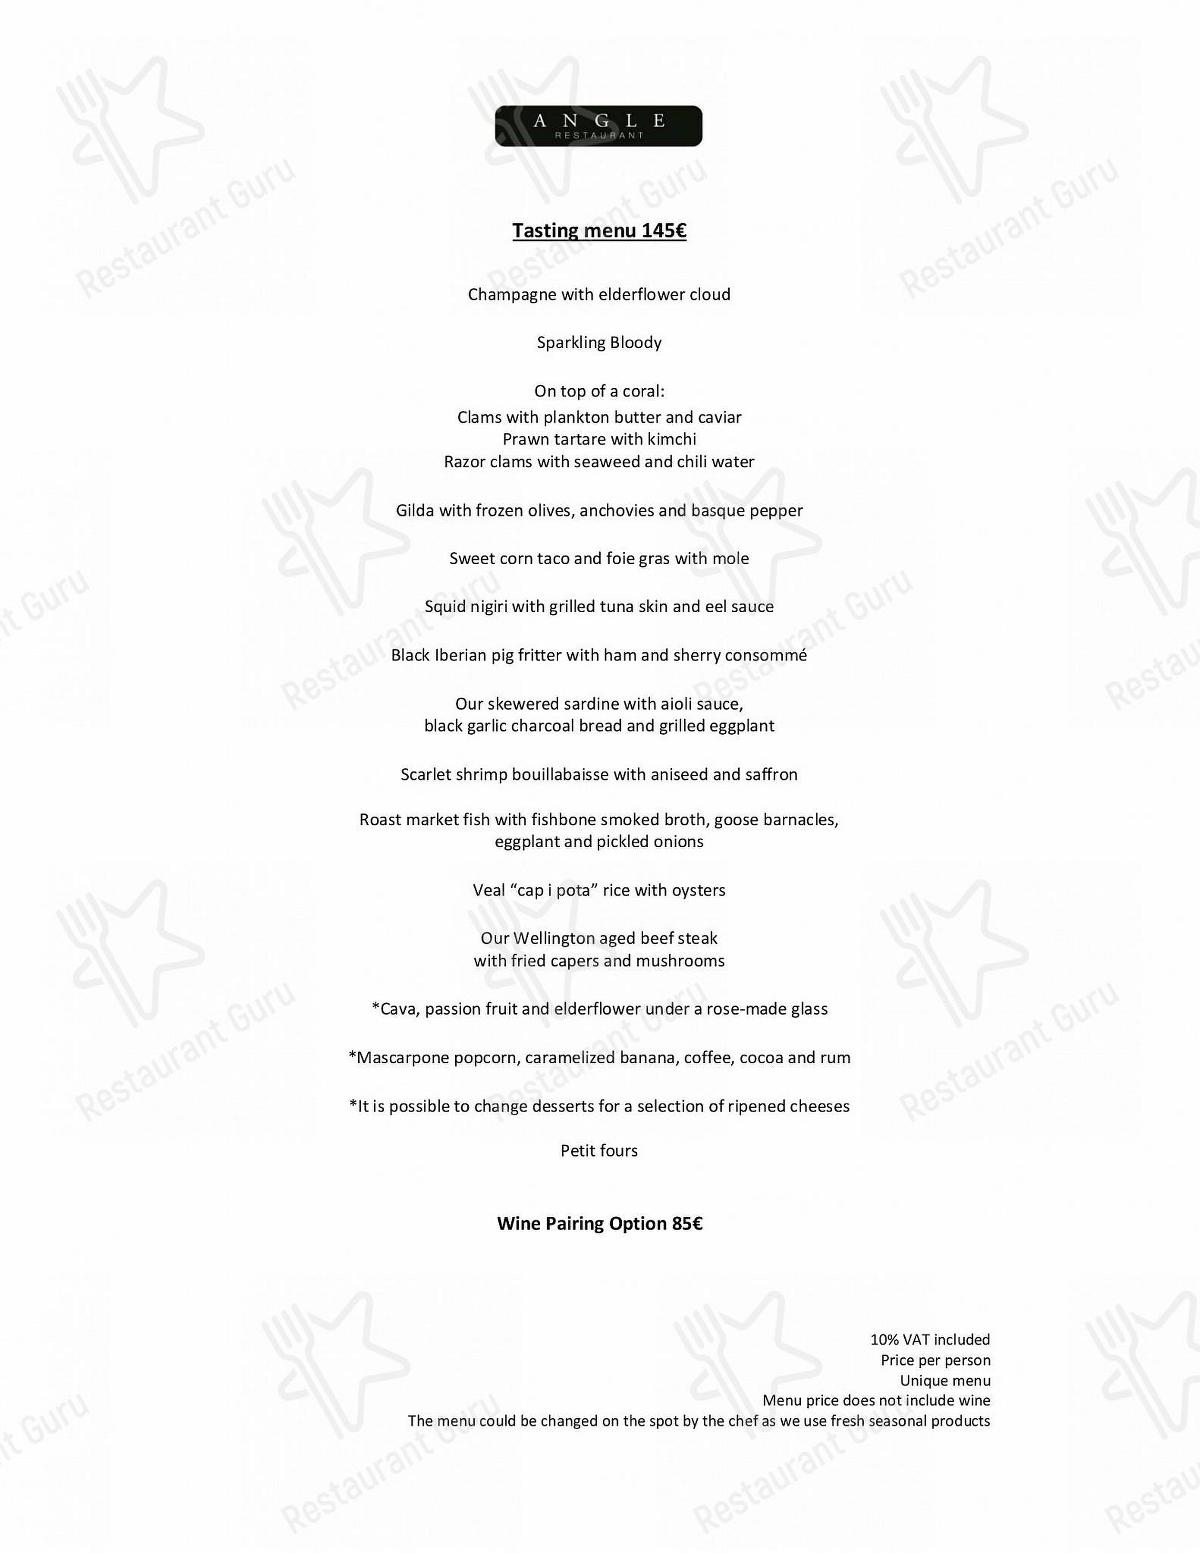 Angle menu - dishes and beverages